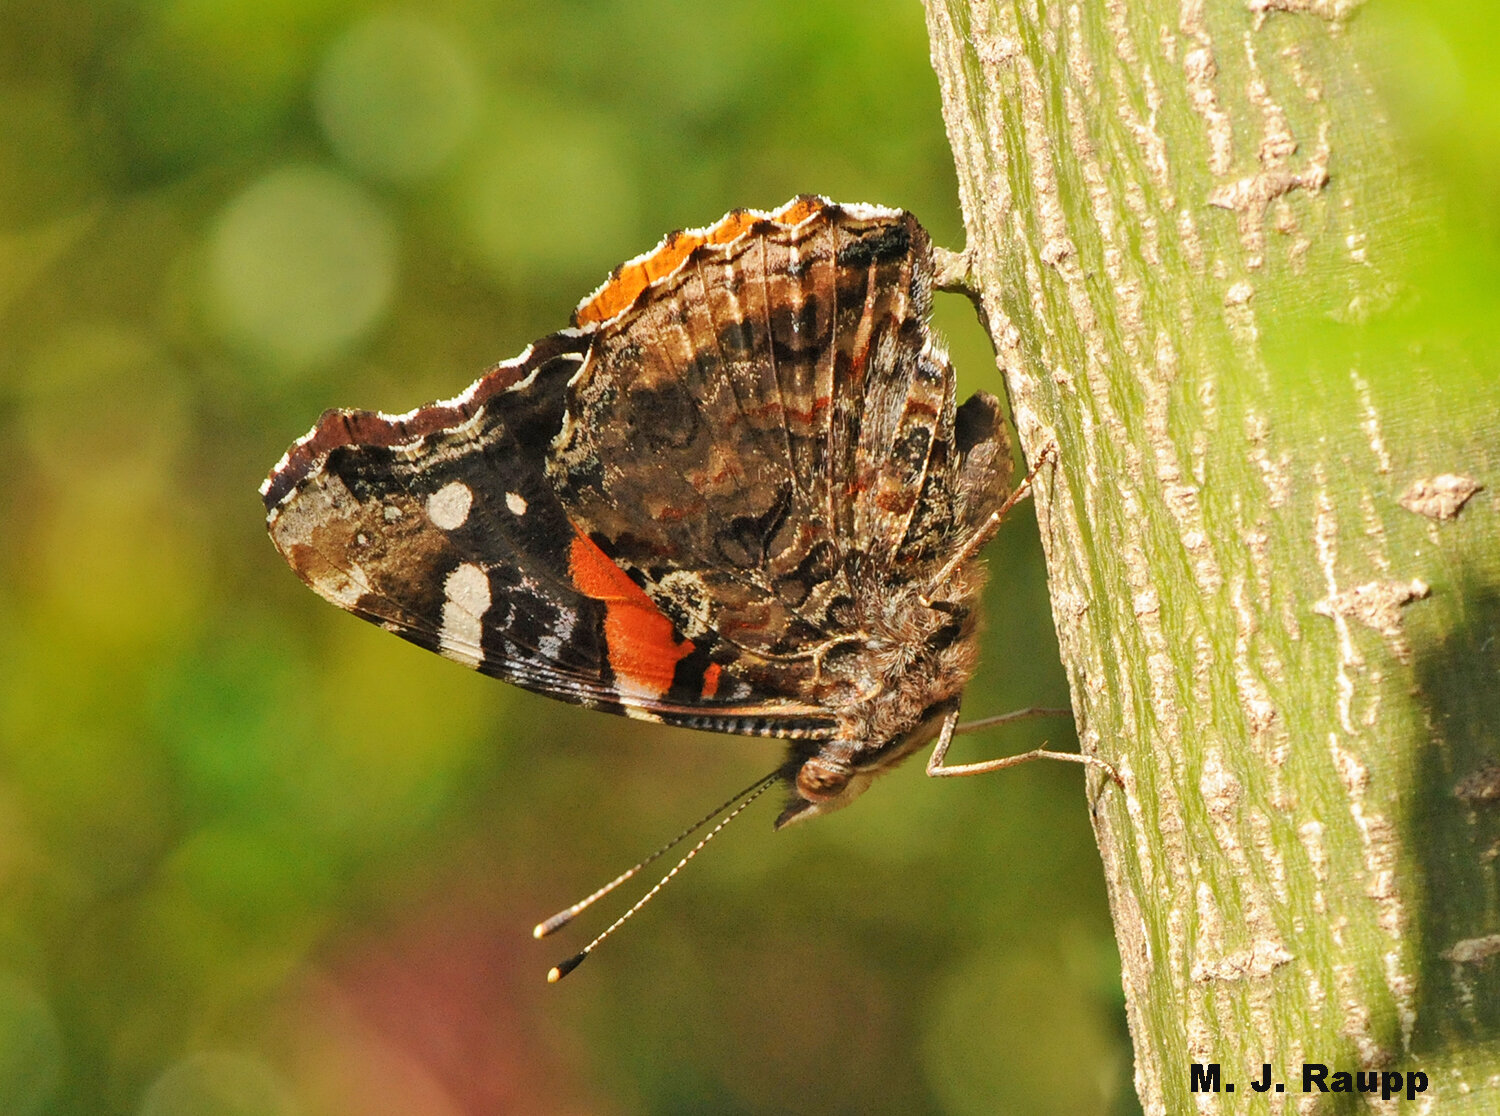 A red admiral appears to survey the surrounding landscape from a small branch. Is it seeking a mate or getting ready to search for food?